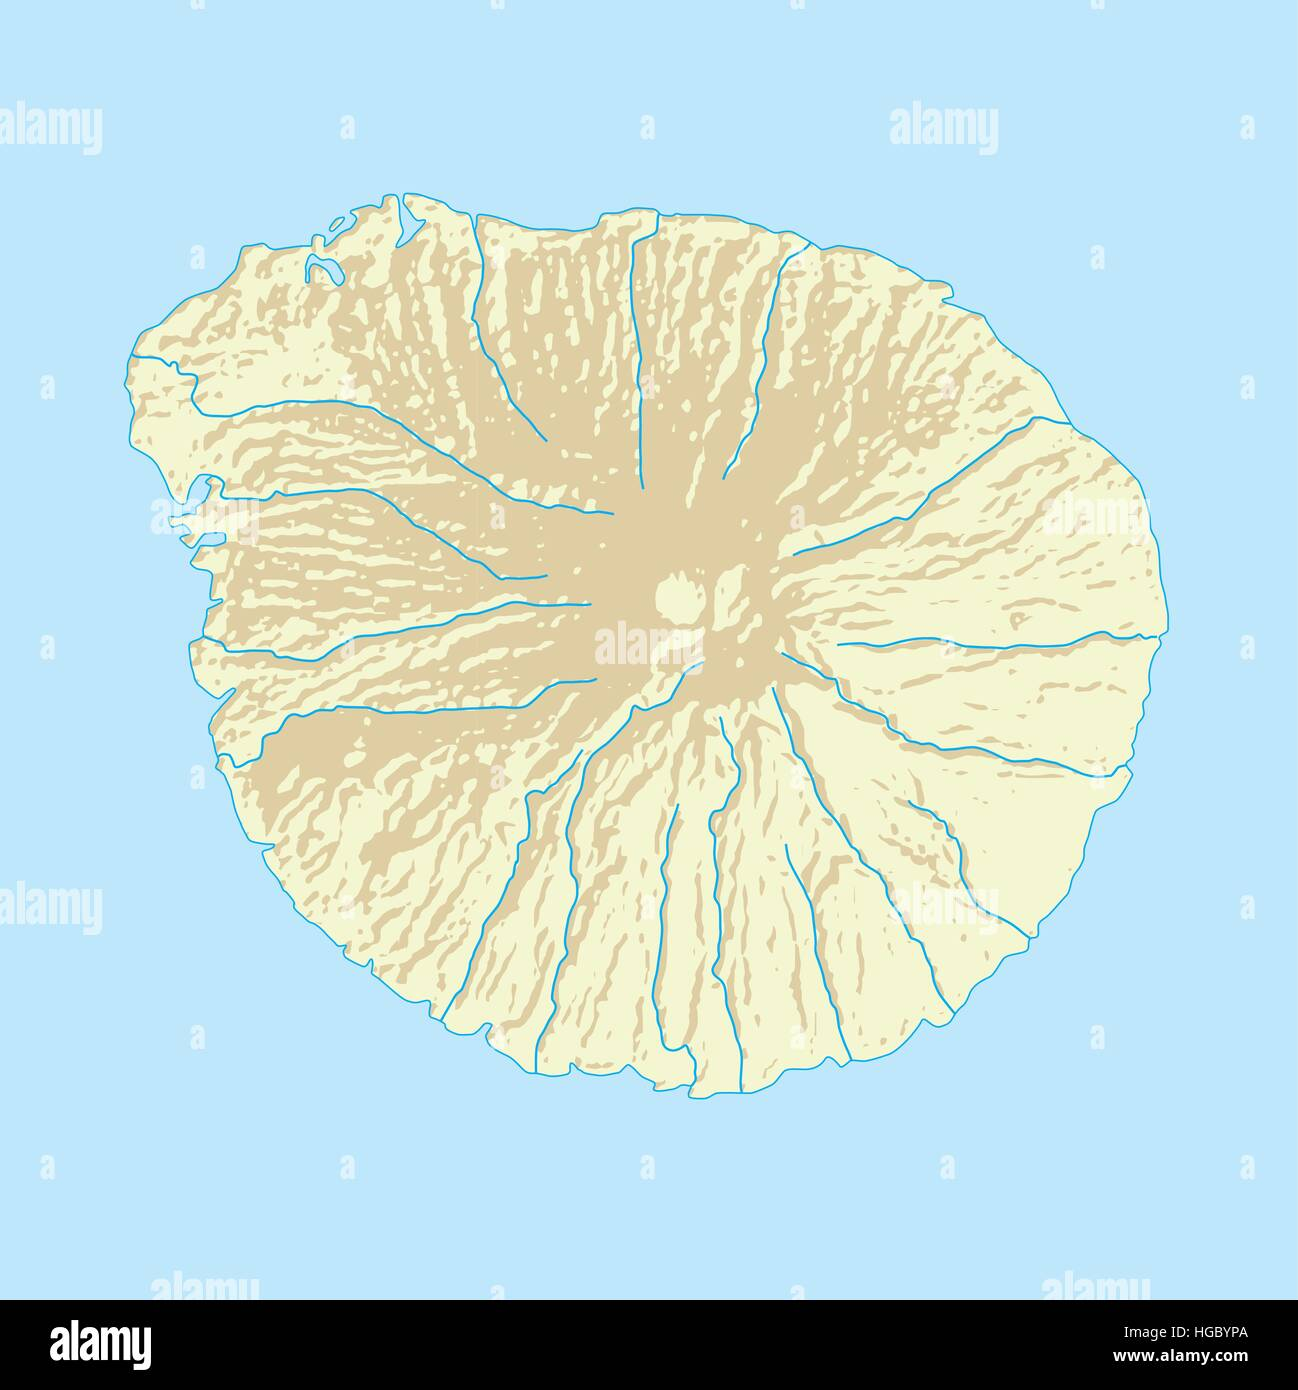 Picture of: Imaginary Volcanic Island Map With Coast And Rivers Stock Vector Image Art Alamy